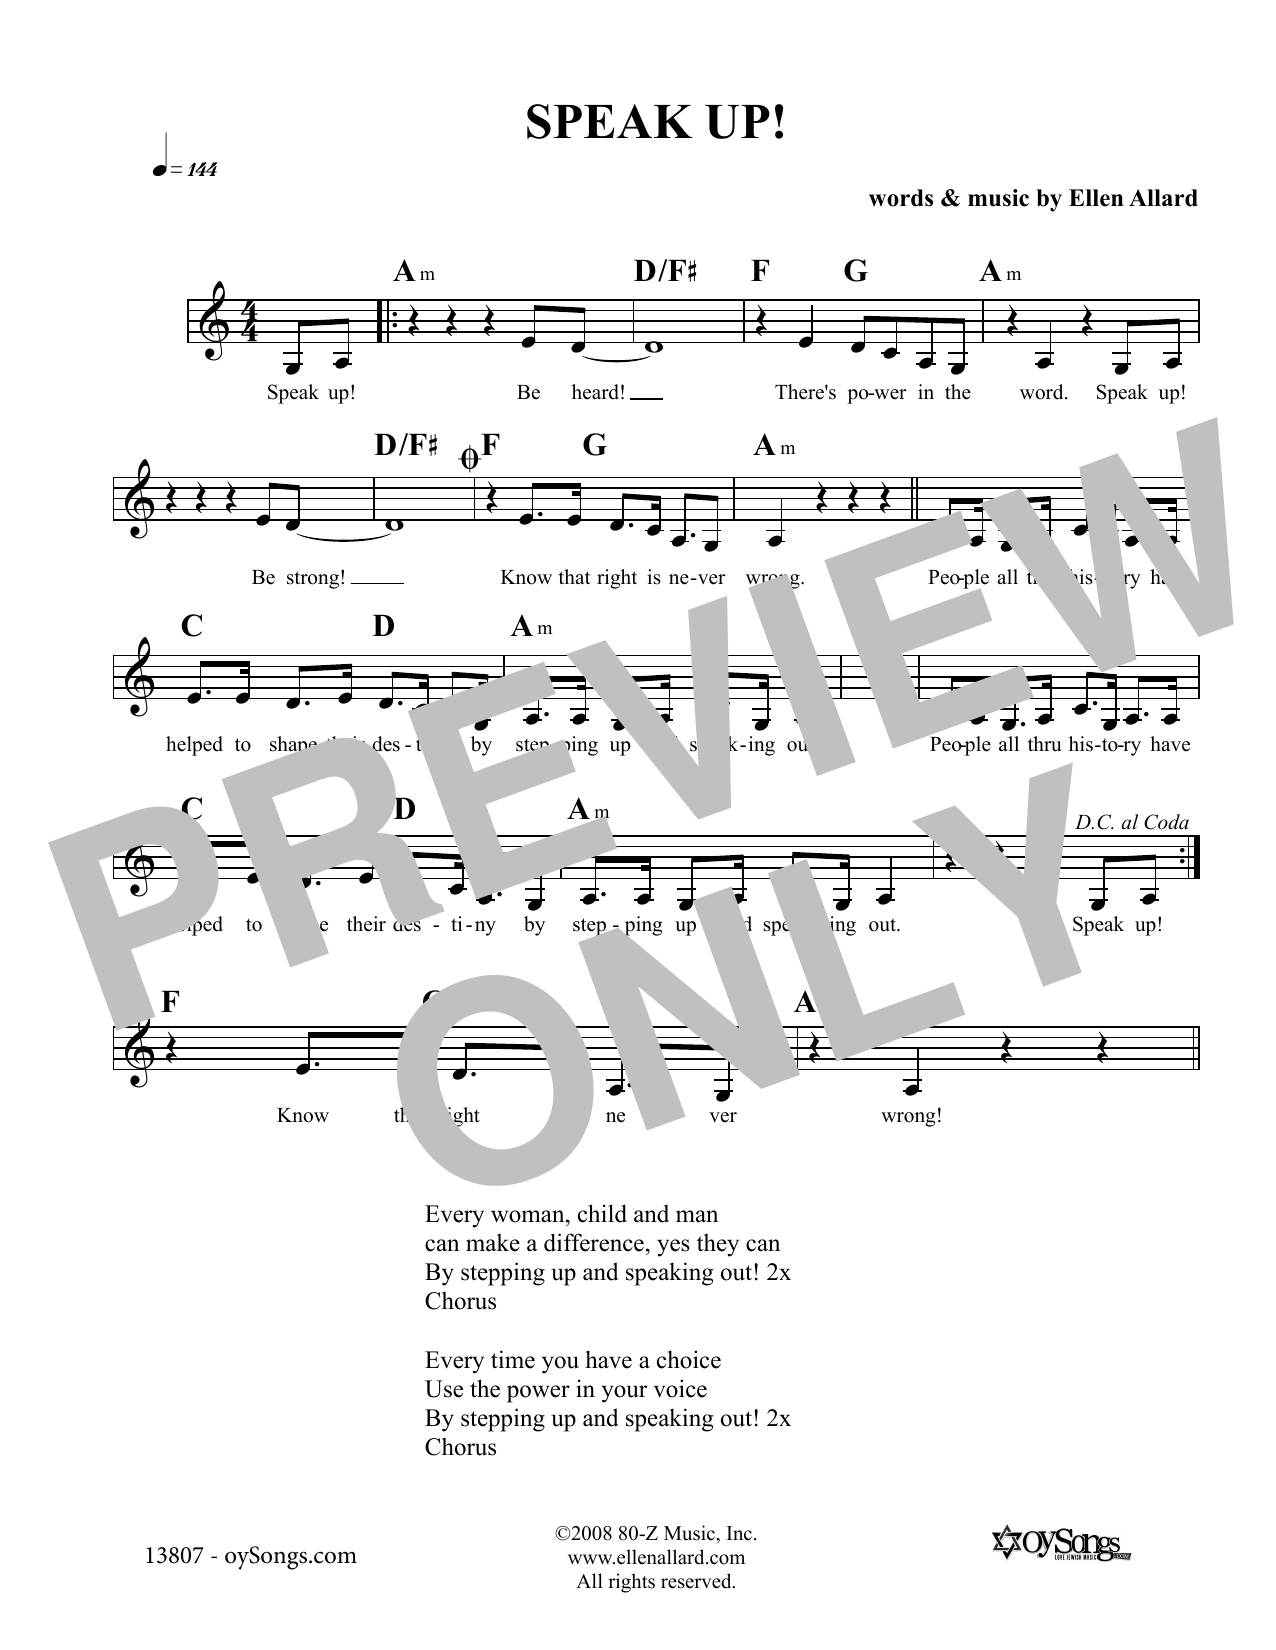 Ellen Allard Speak Up sheet music notes and chords. Download Printable PDF.